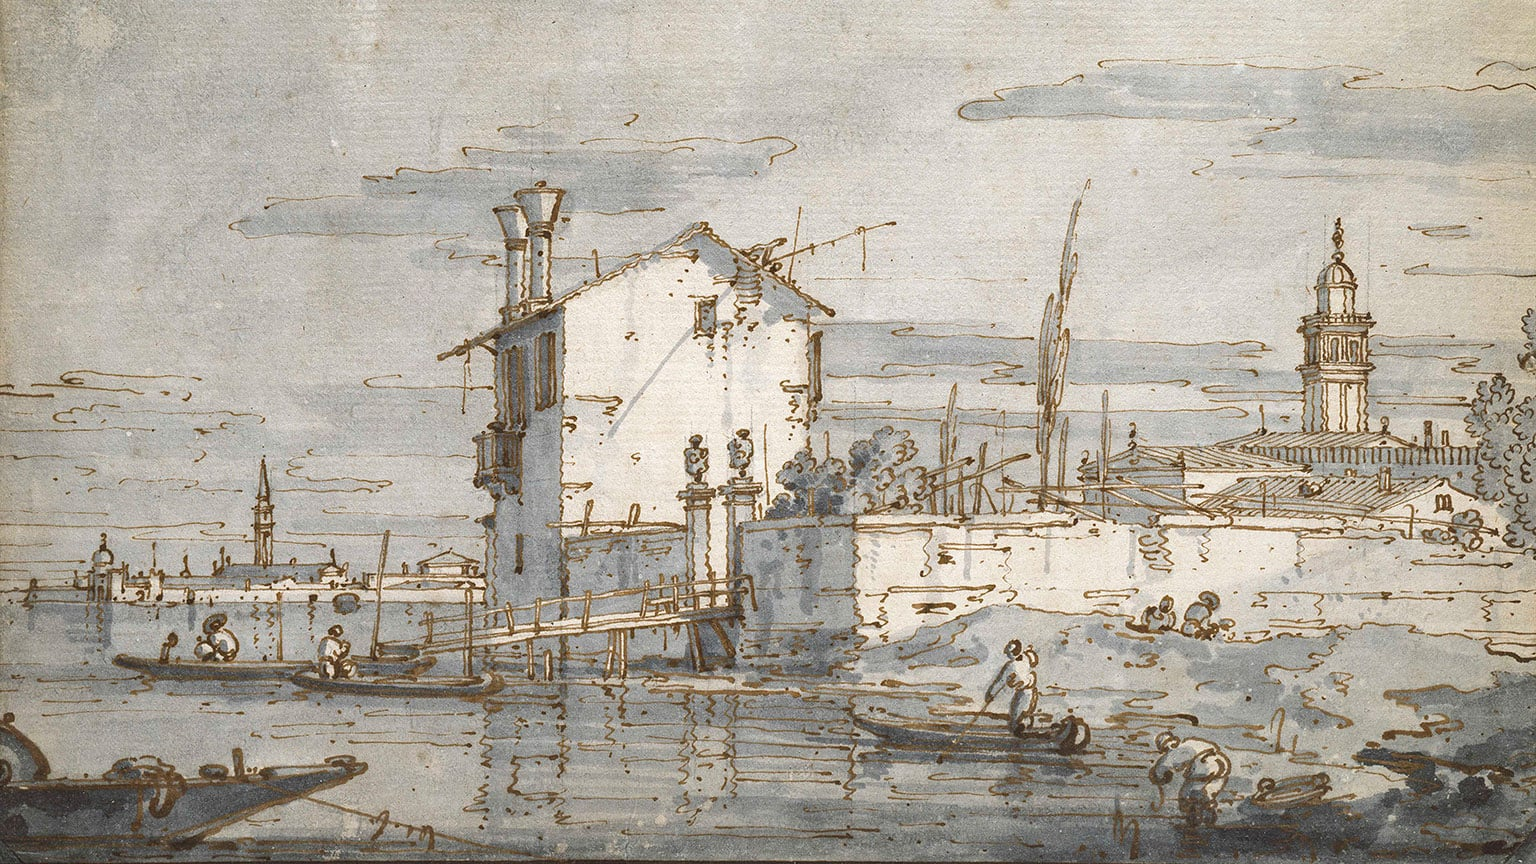 2. Titian to Canaletto: Drawing in Venice, Ashmolean Museum, 50% off with National Art Pass - Giovanni Antonio Canal, known as Canaletto, An Island in the Lagoon. © Ashmolean Museum, University of Oxford